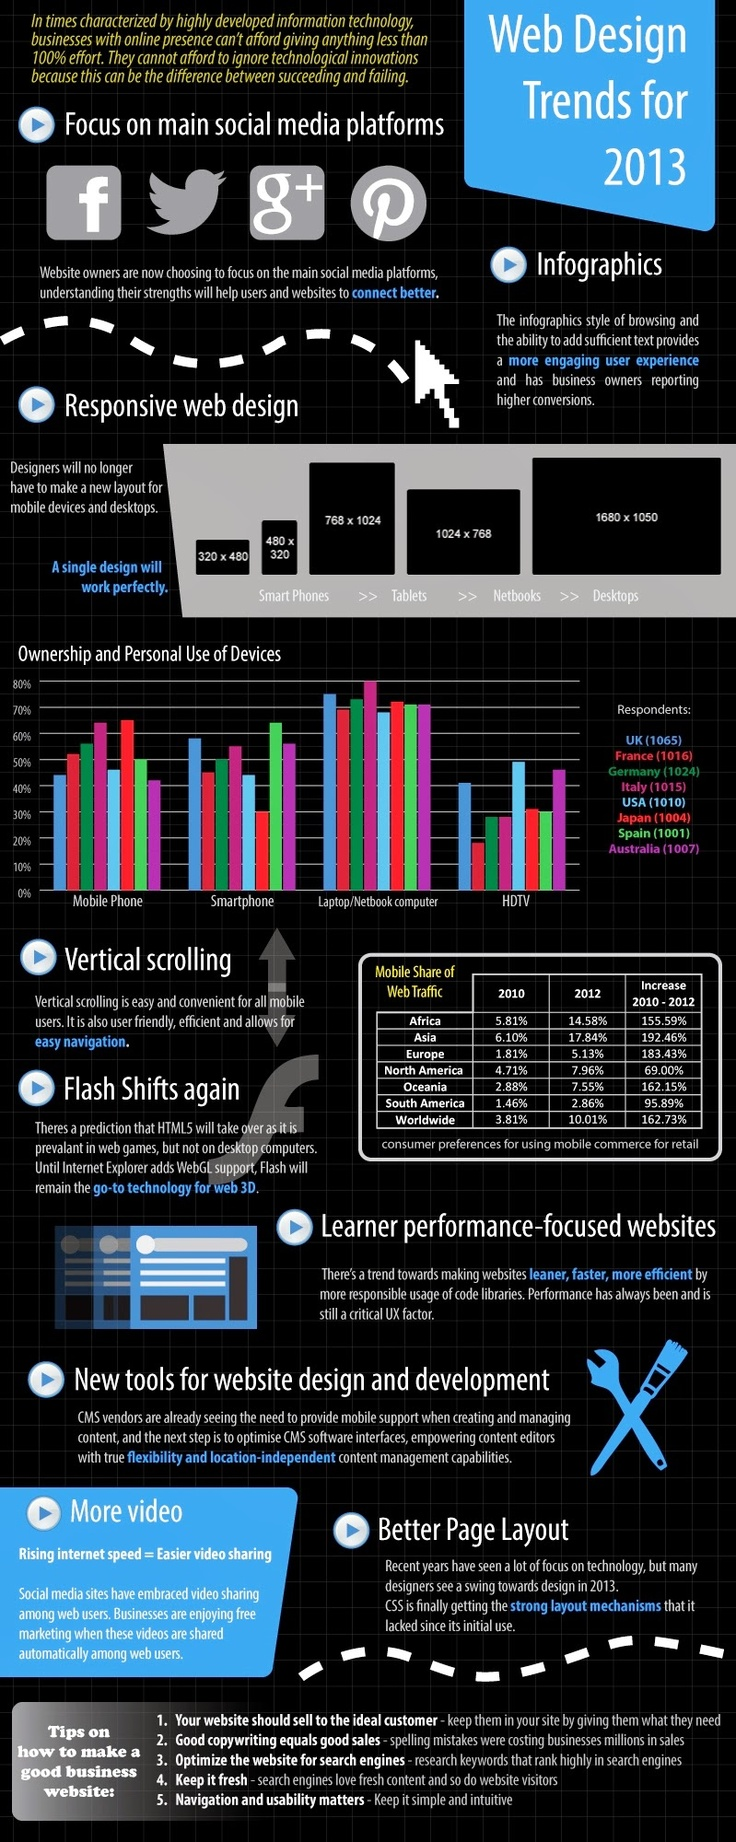 Web DEsign Trends 2013 Infographic